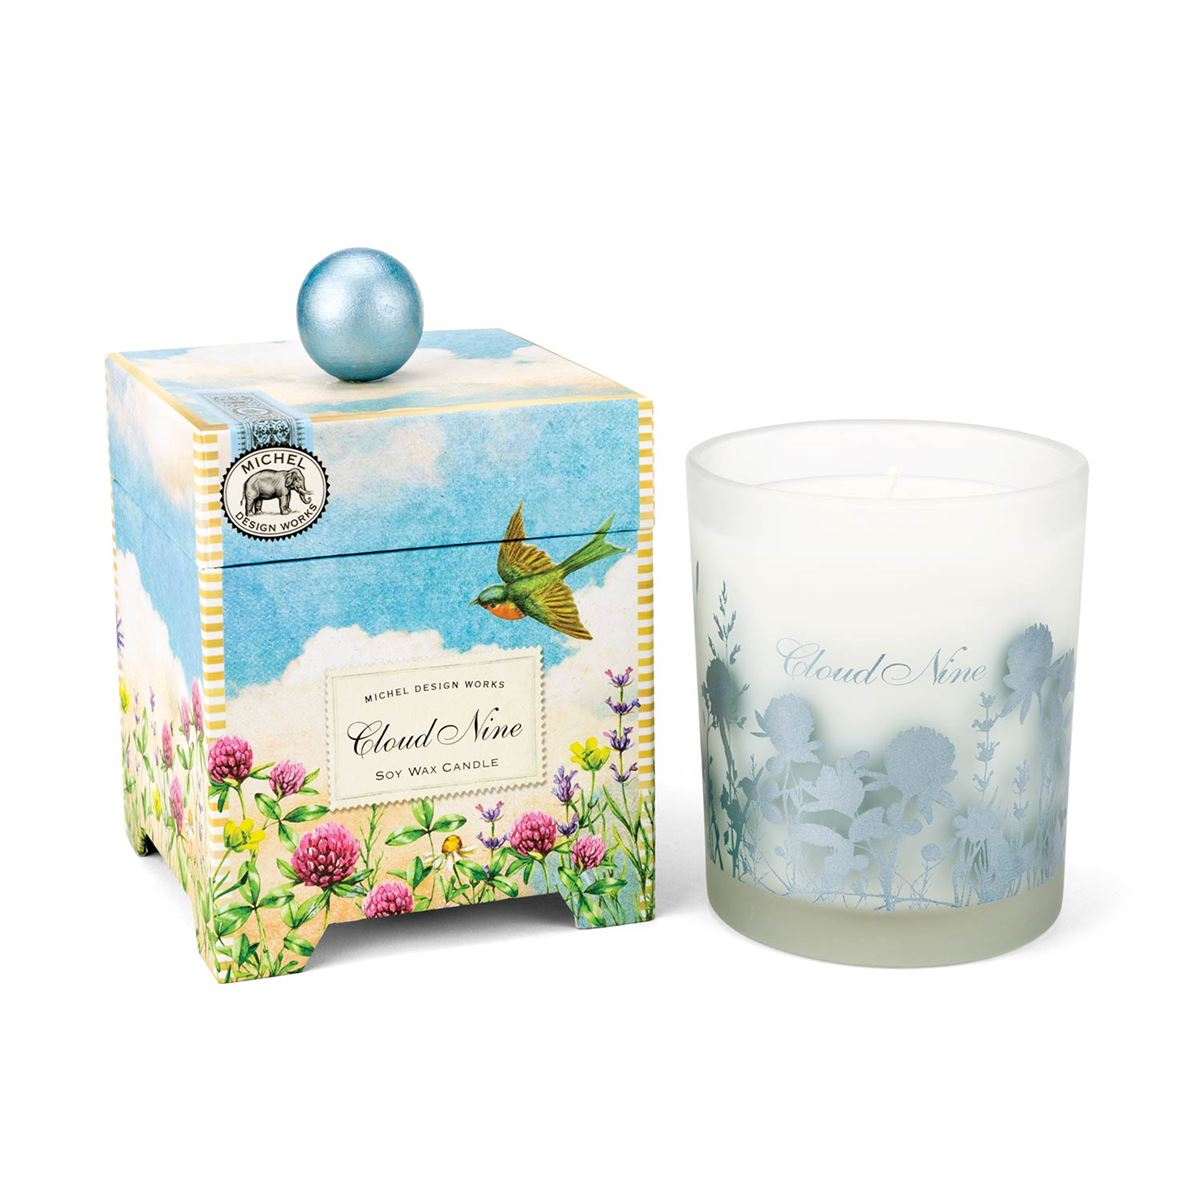 """Cloud Nine"" Soy Wax Candle"